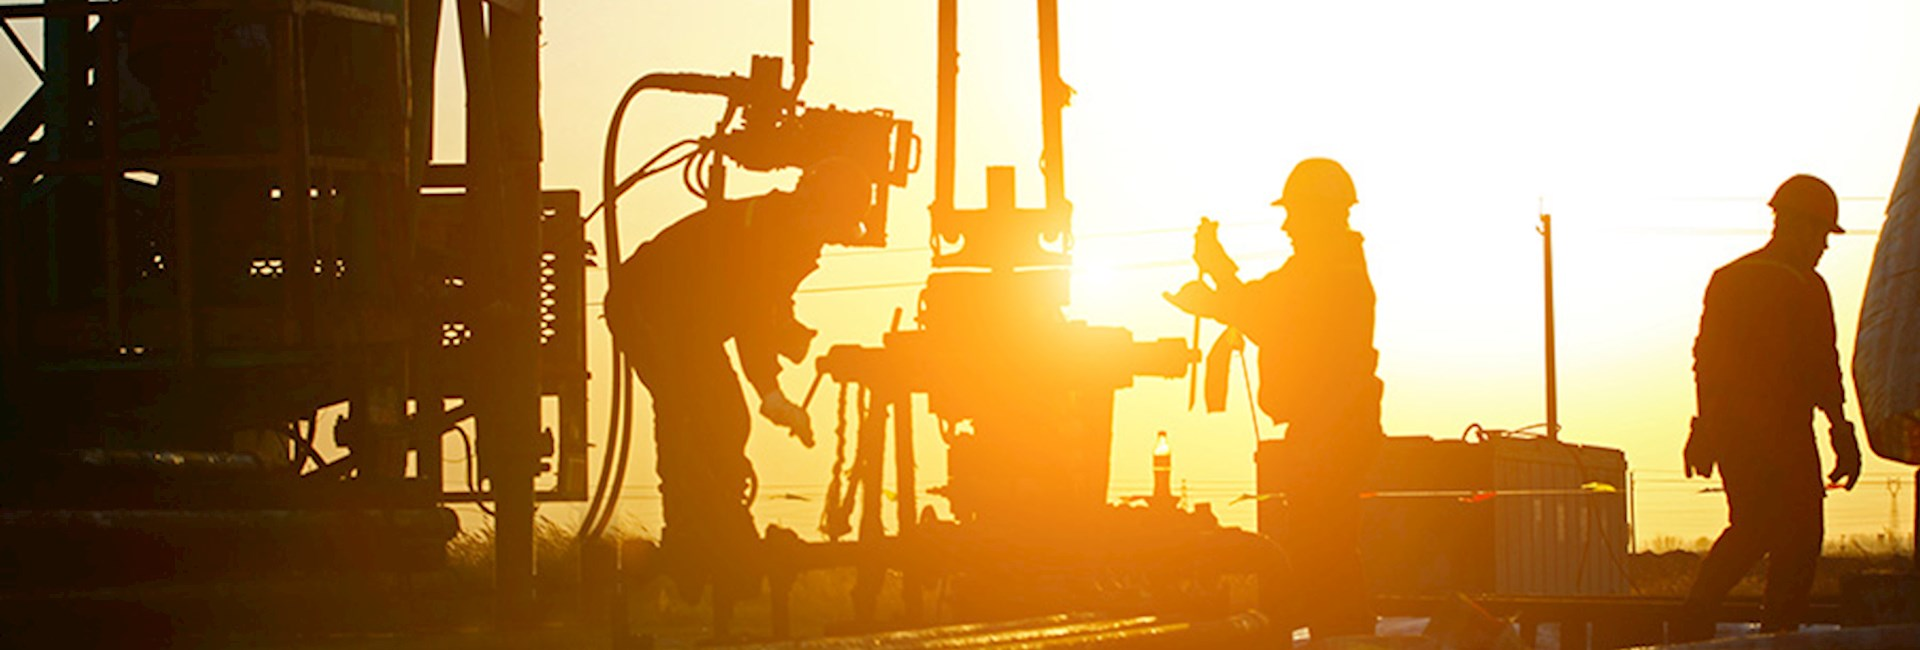 Oil rig workers